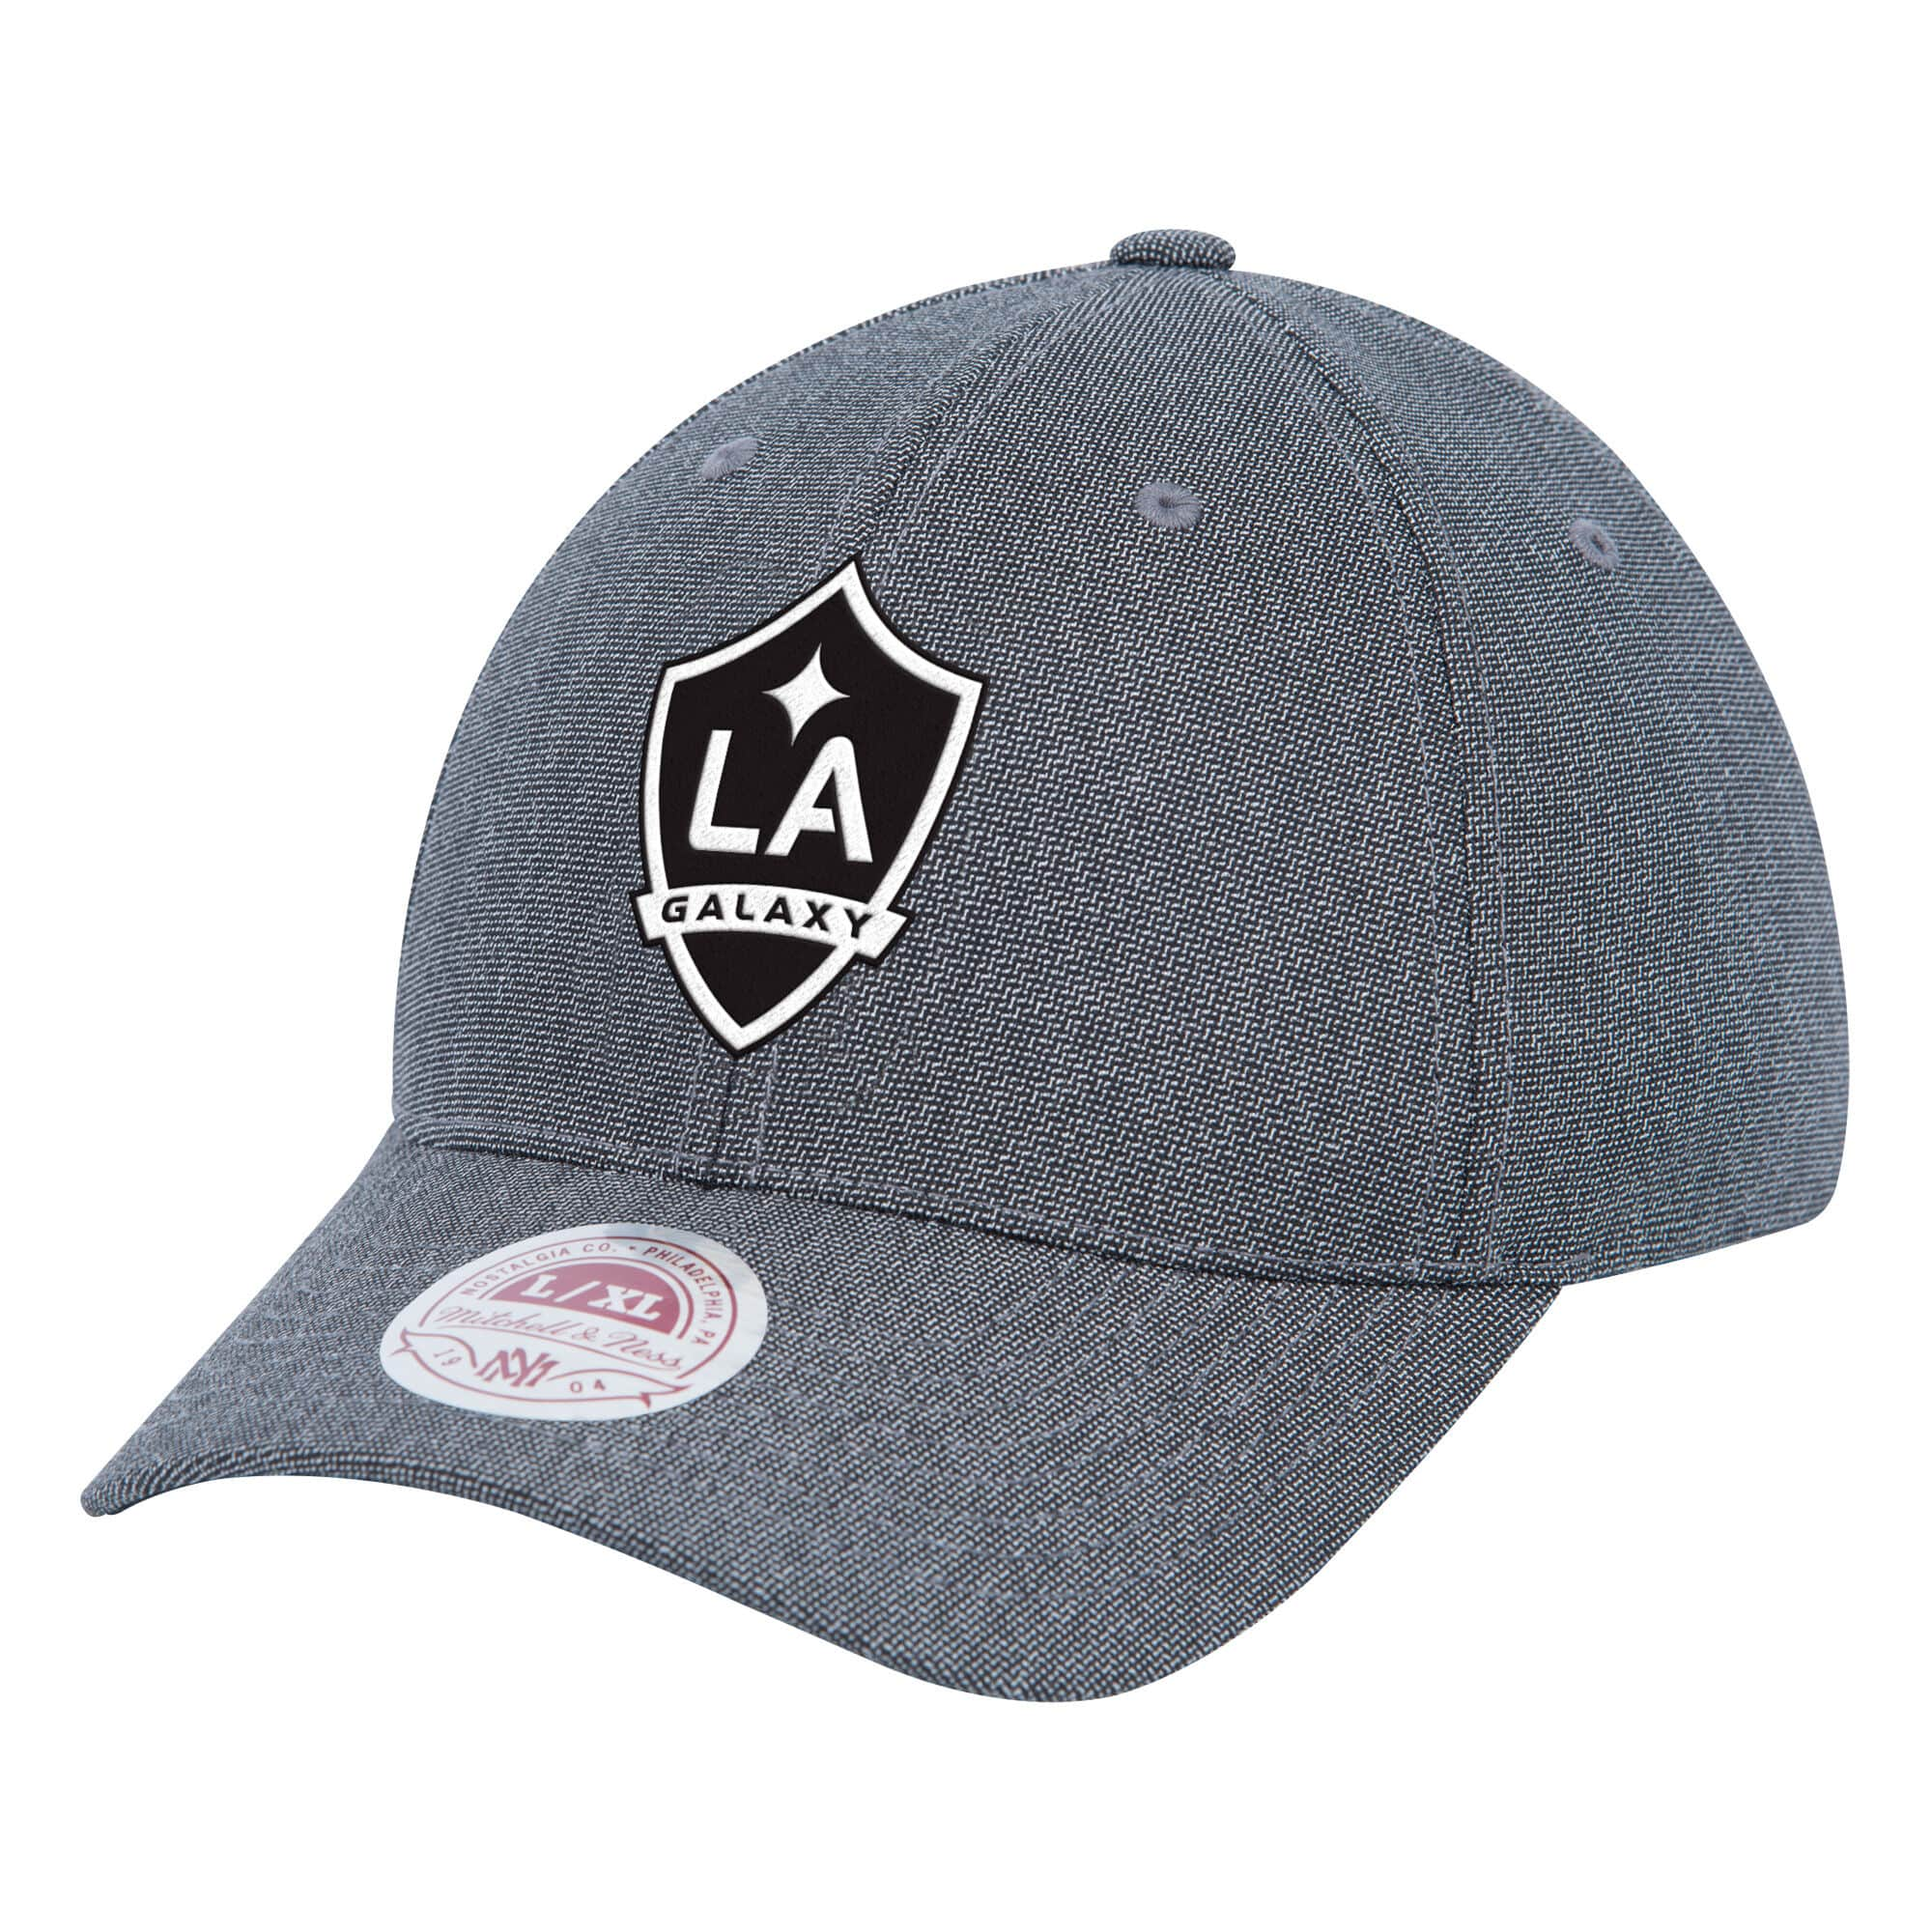 Stretch Melange Fitted Los Angeles Galaxy